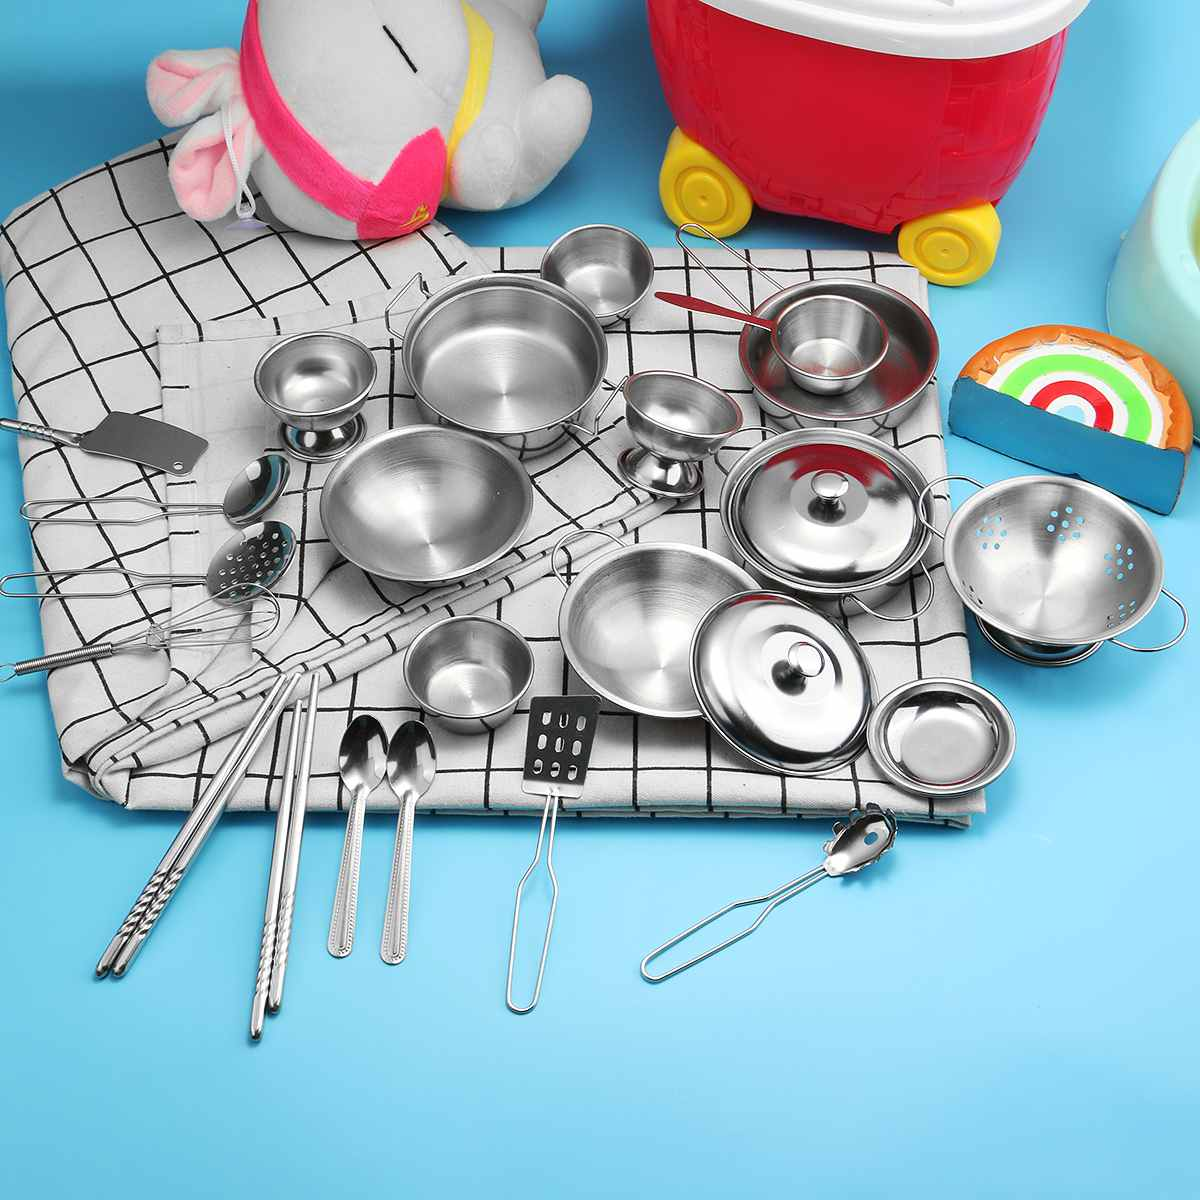 25PCS/Set Stainless Steel Cooking Toys Set Pretend Cookware Set For Little Chef Play House Kitchen Toys For Boys Or Girl Gifts